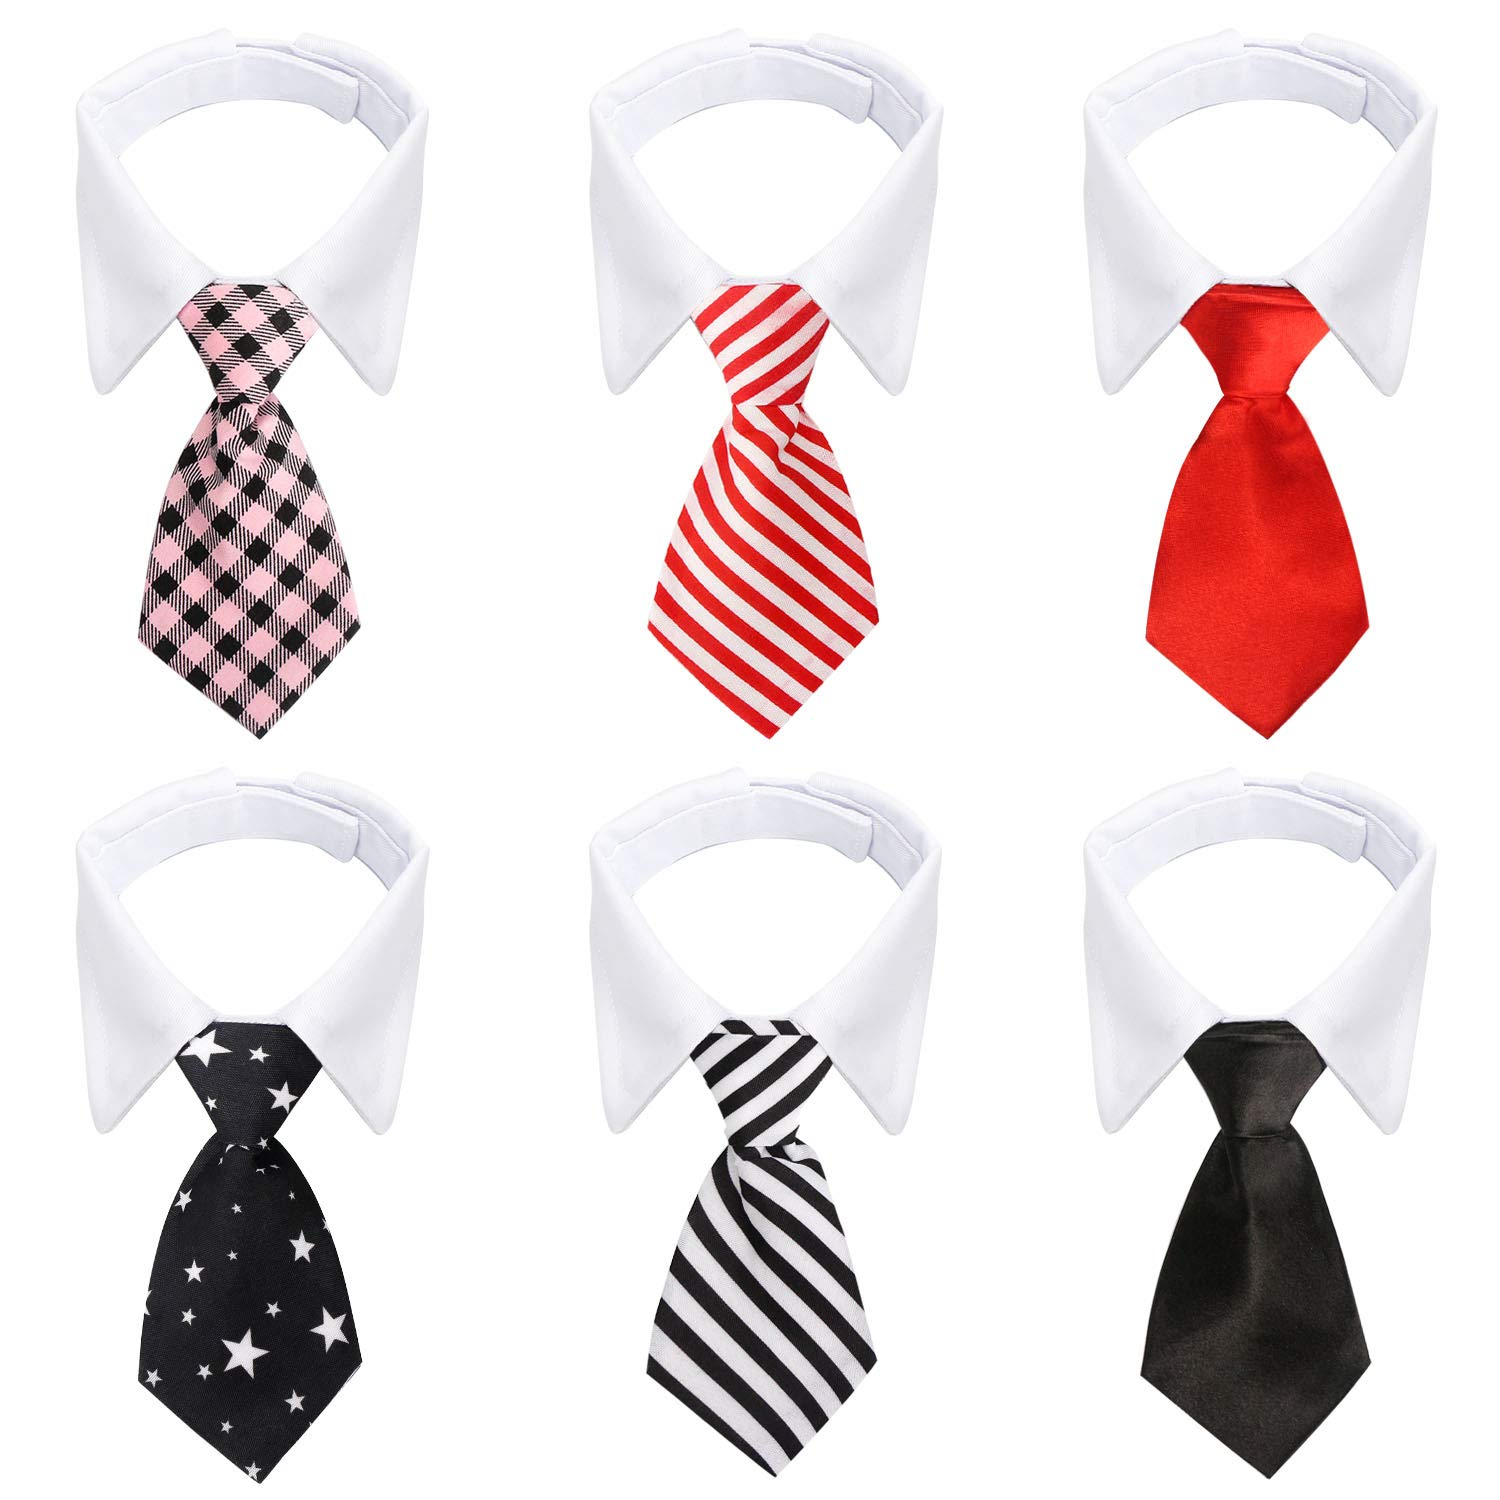 cd247d2b3f897 Segarty Dog Ties, 6pcs Pet Formal Classy Neckties, Tuxedo Bow Tie with Suit  White Collar for Pup Cat, Birthday Gift, Grooming Accessories, Wedding, ...